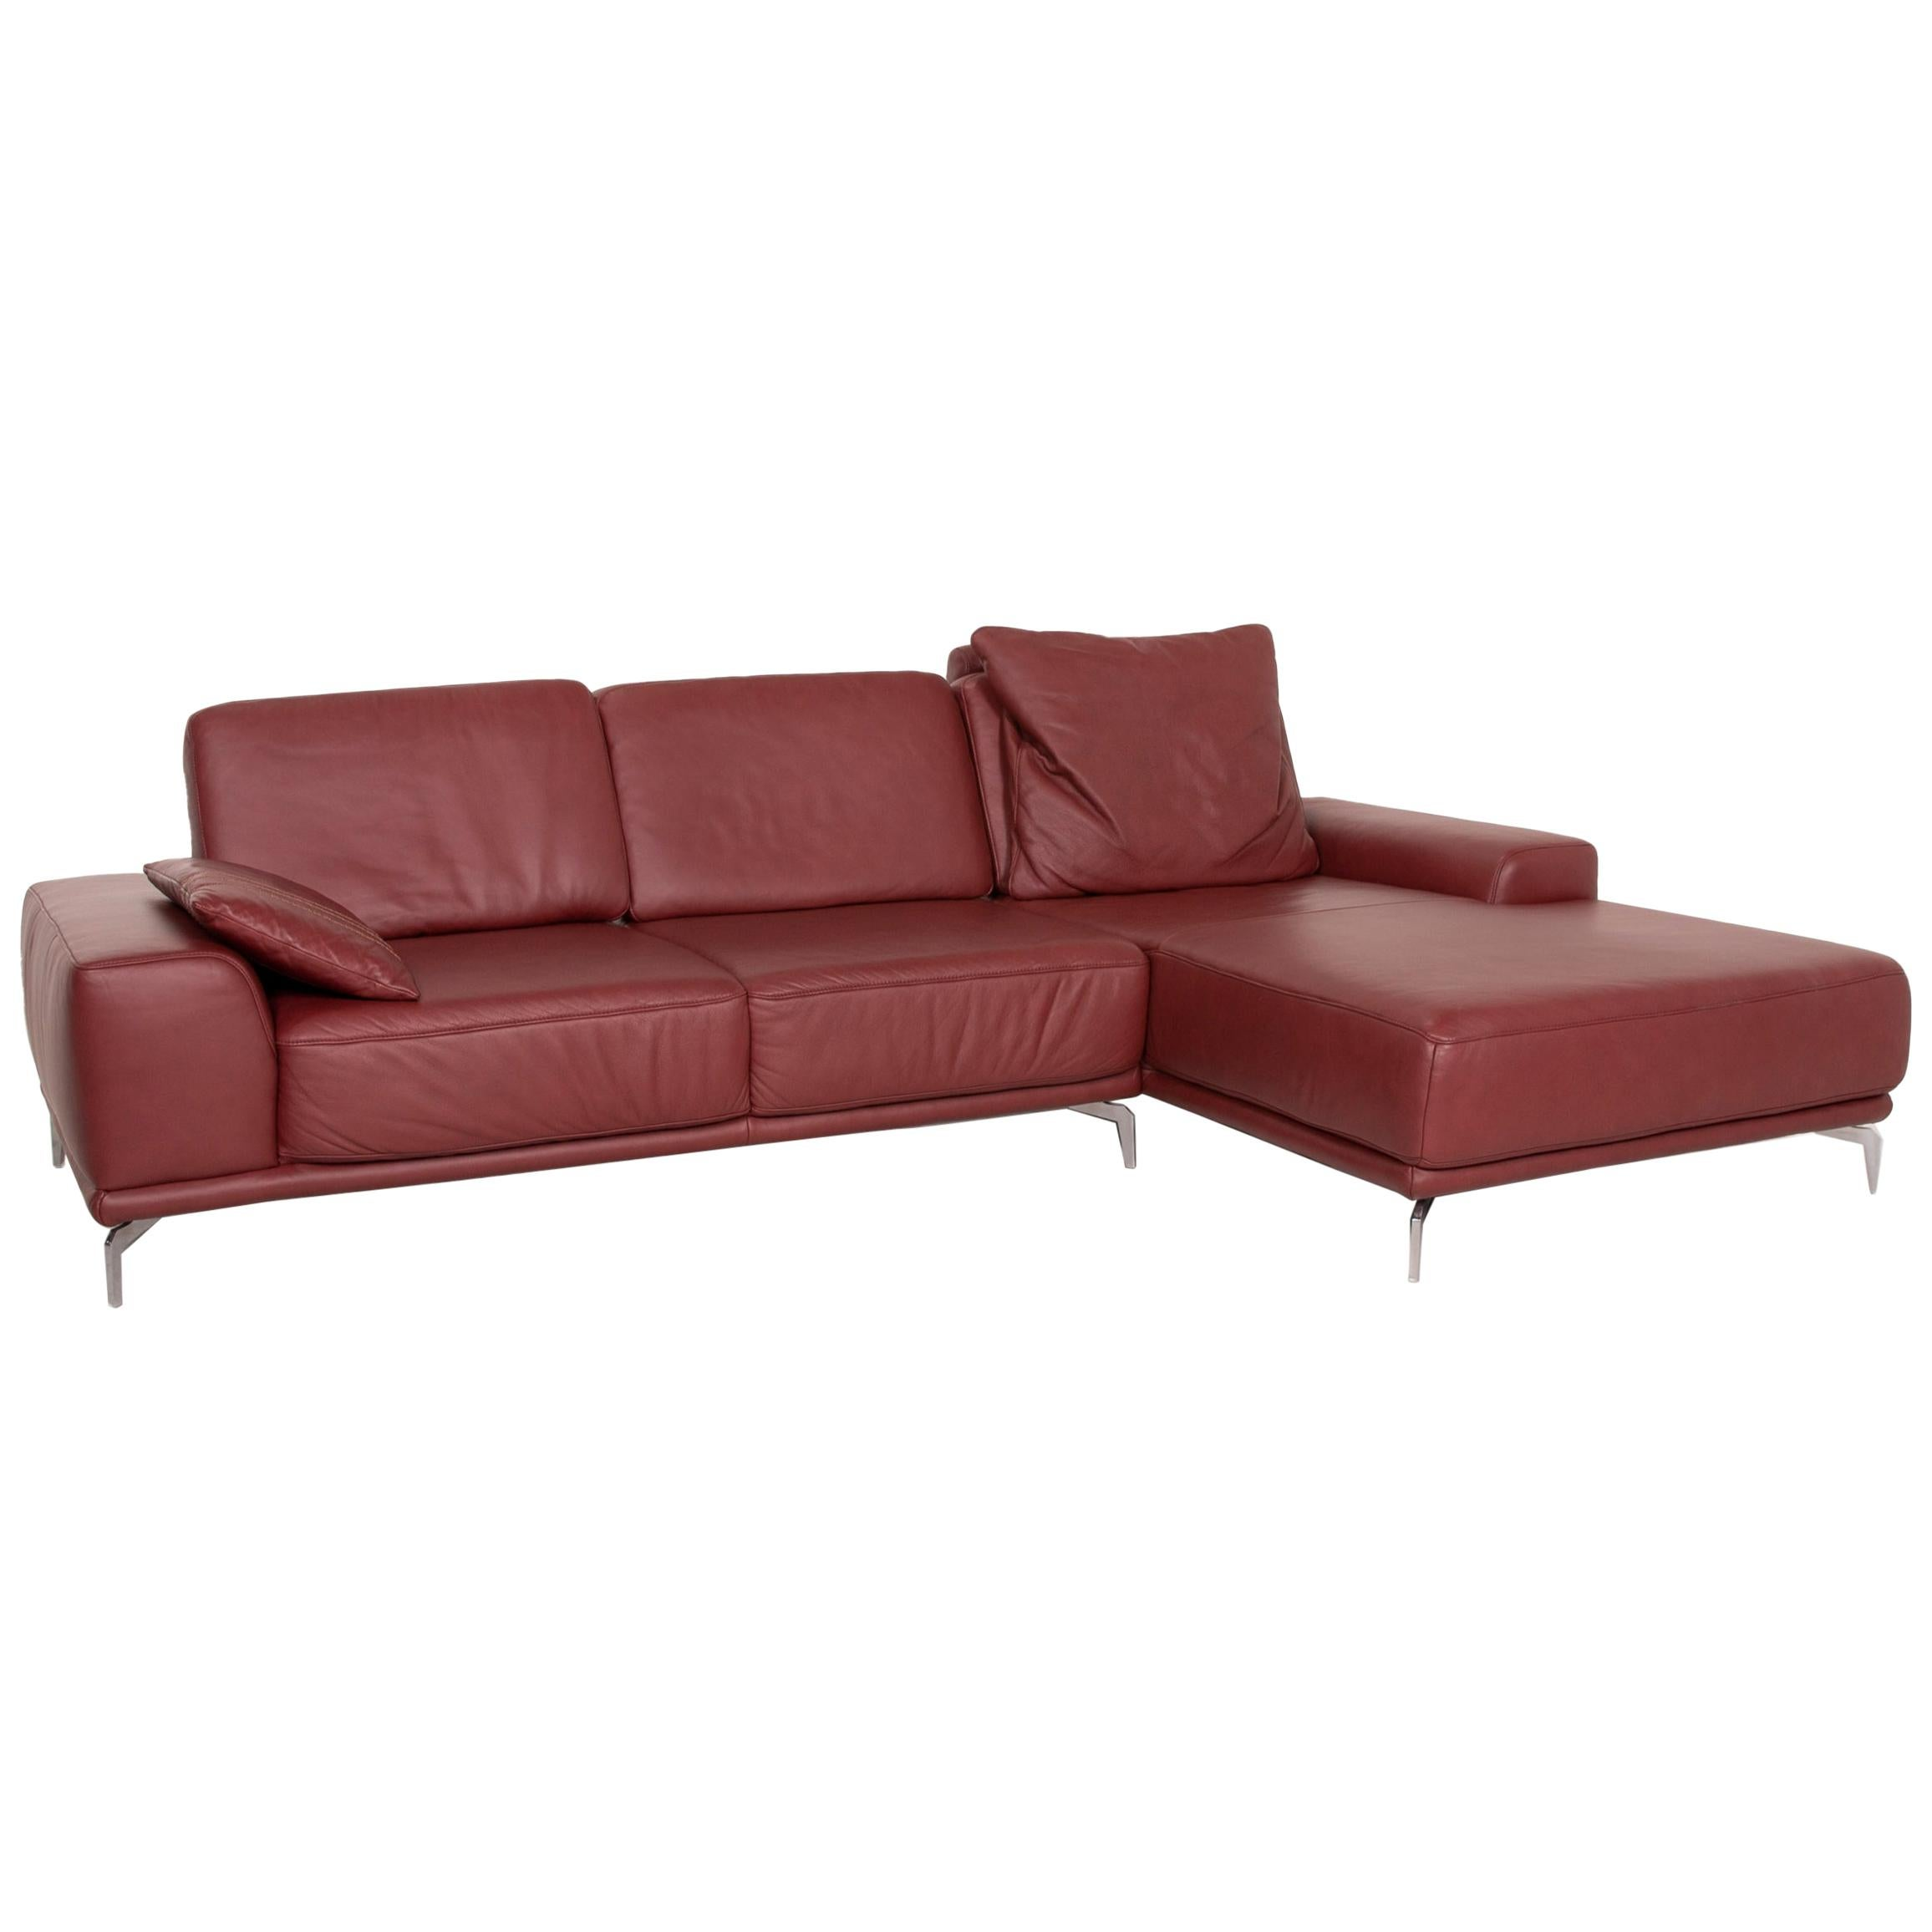 Willi Schillig Sixty SiXx Leather Sofa Red Corner Sofa